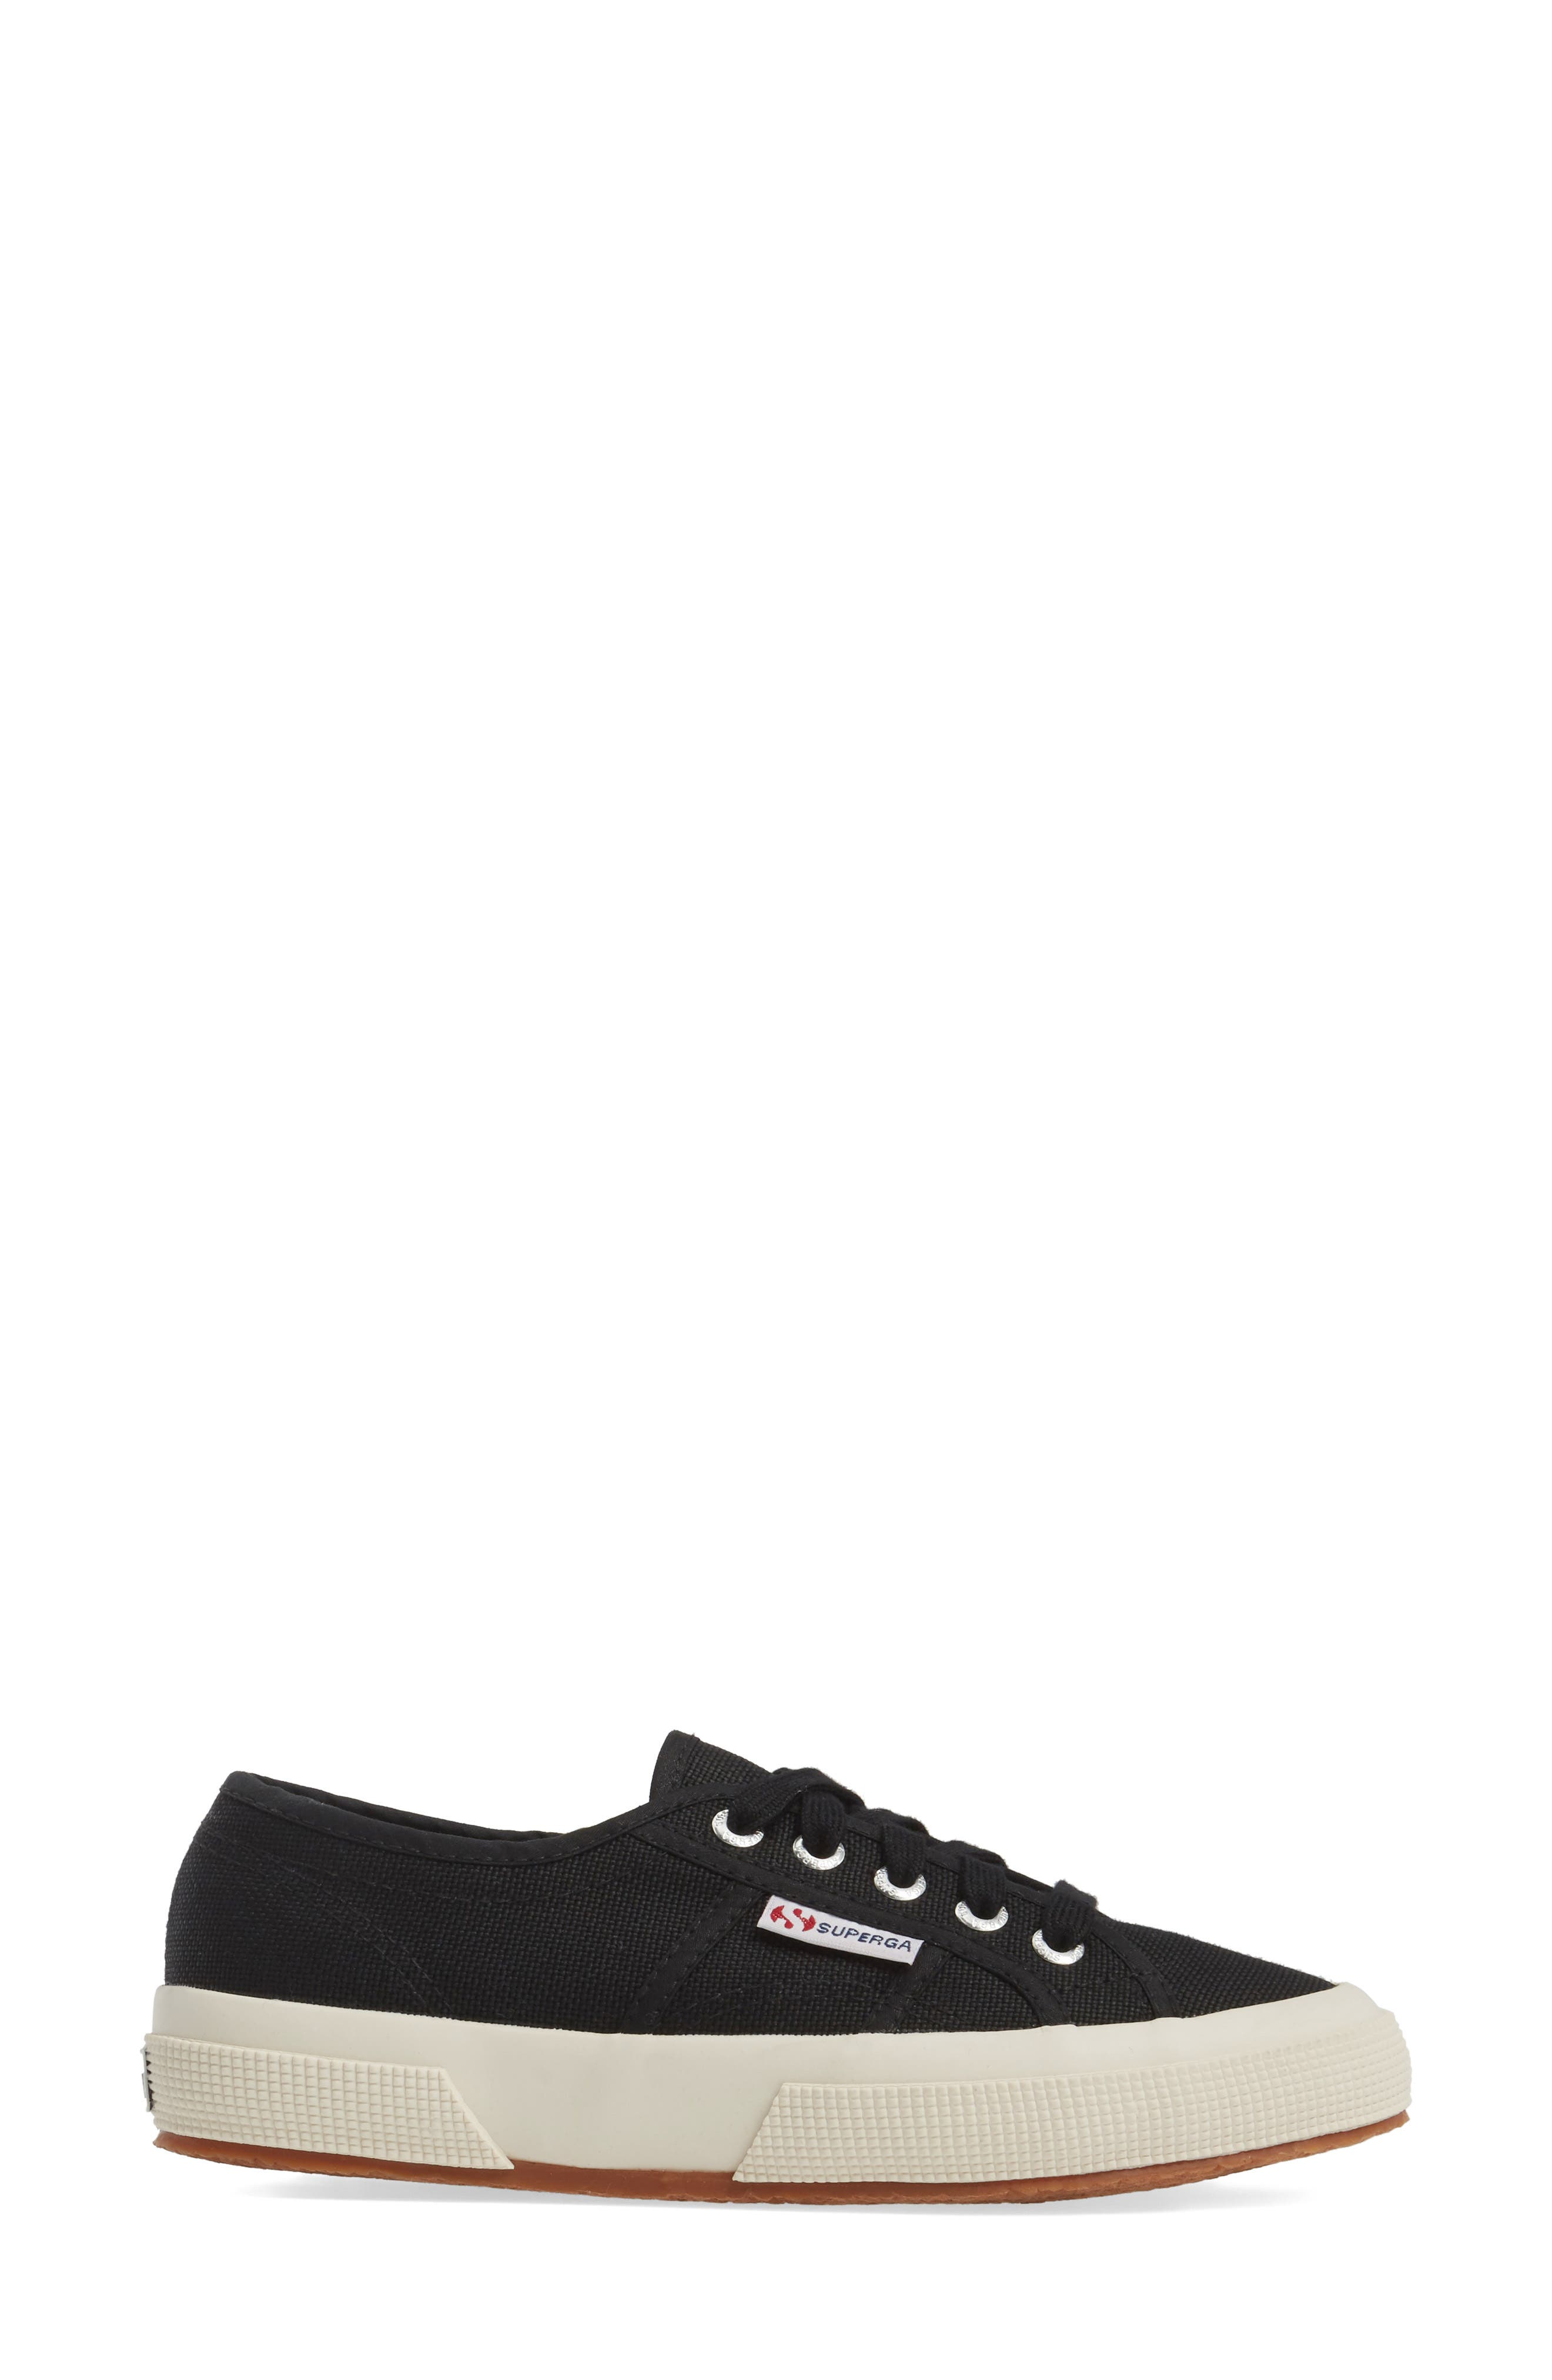 'Cotu' Sneaker,                             Alternate thumbnail 4, color,                             BLACK CANVAS